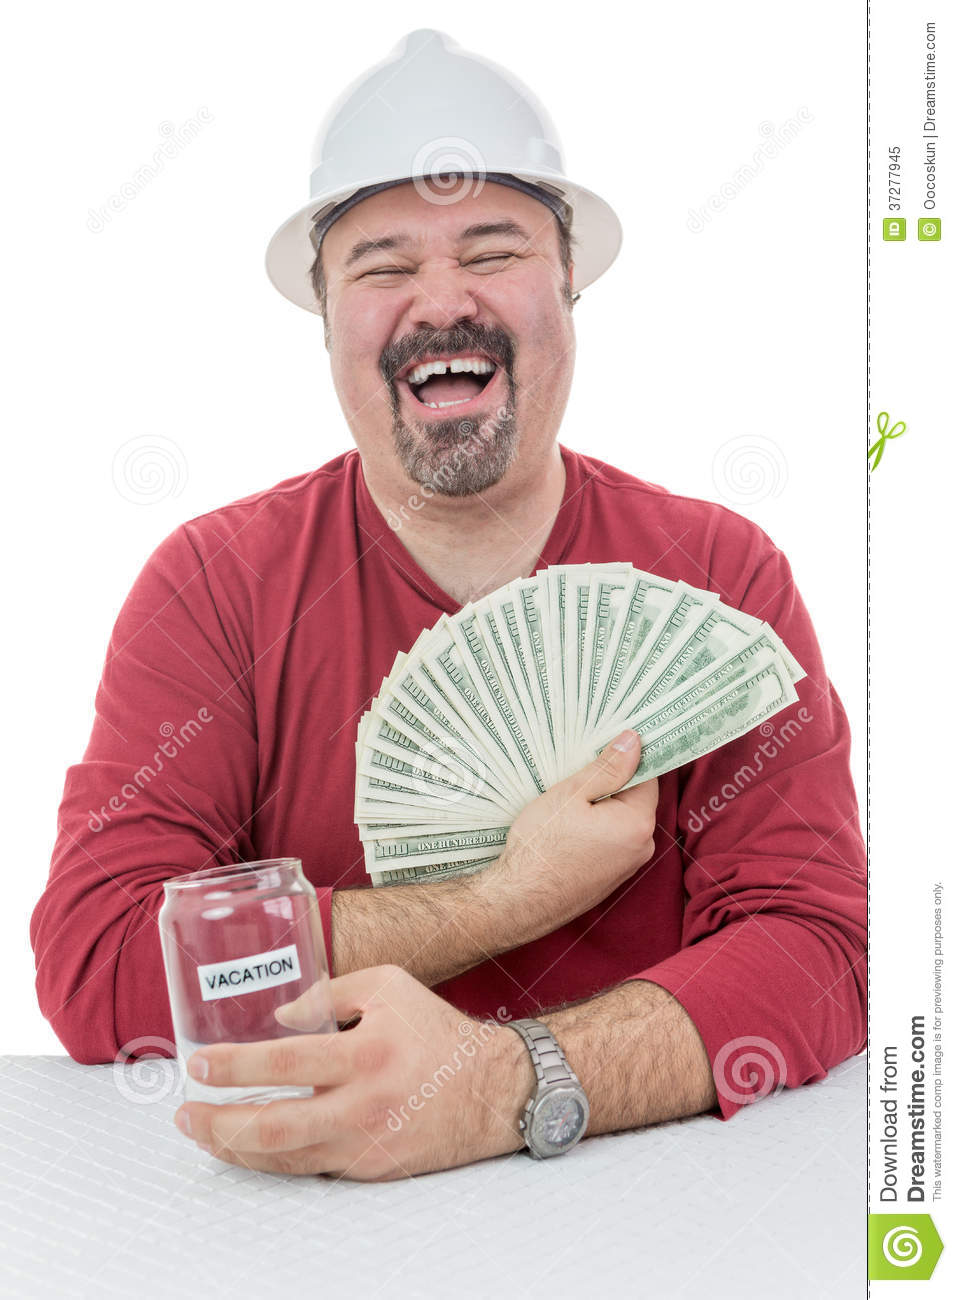 Construction Worker Laughing With Vacations Money Royalty